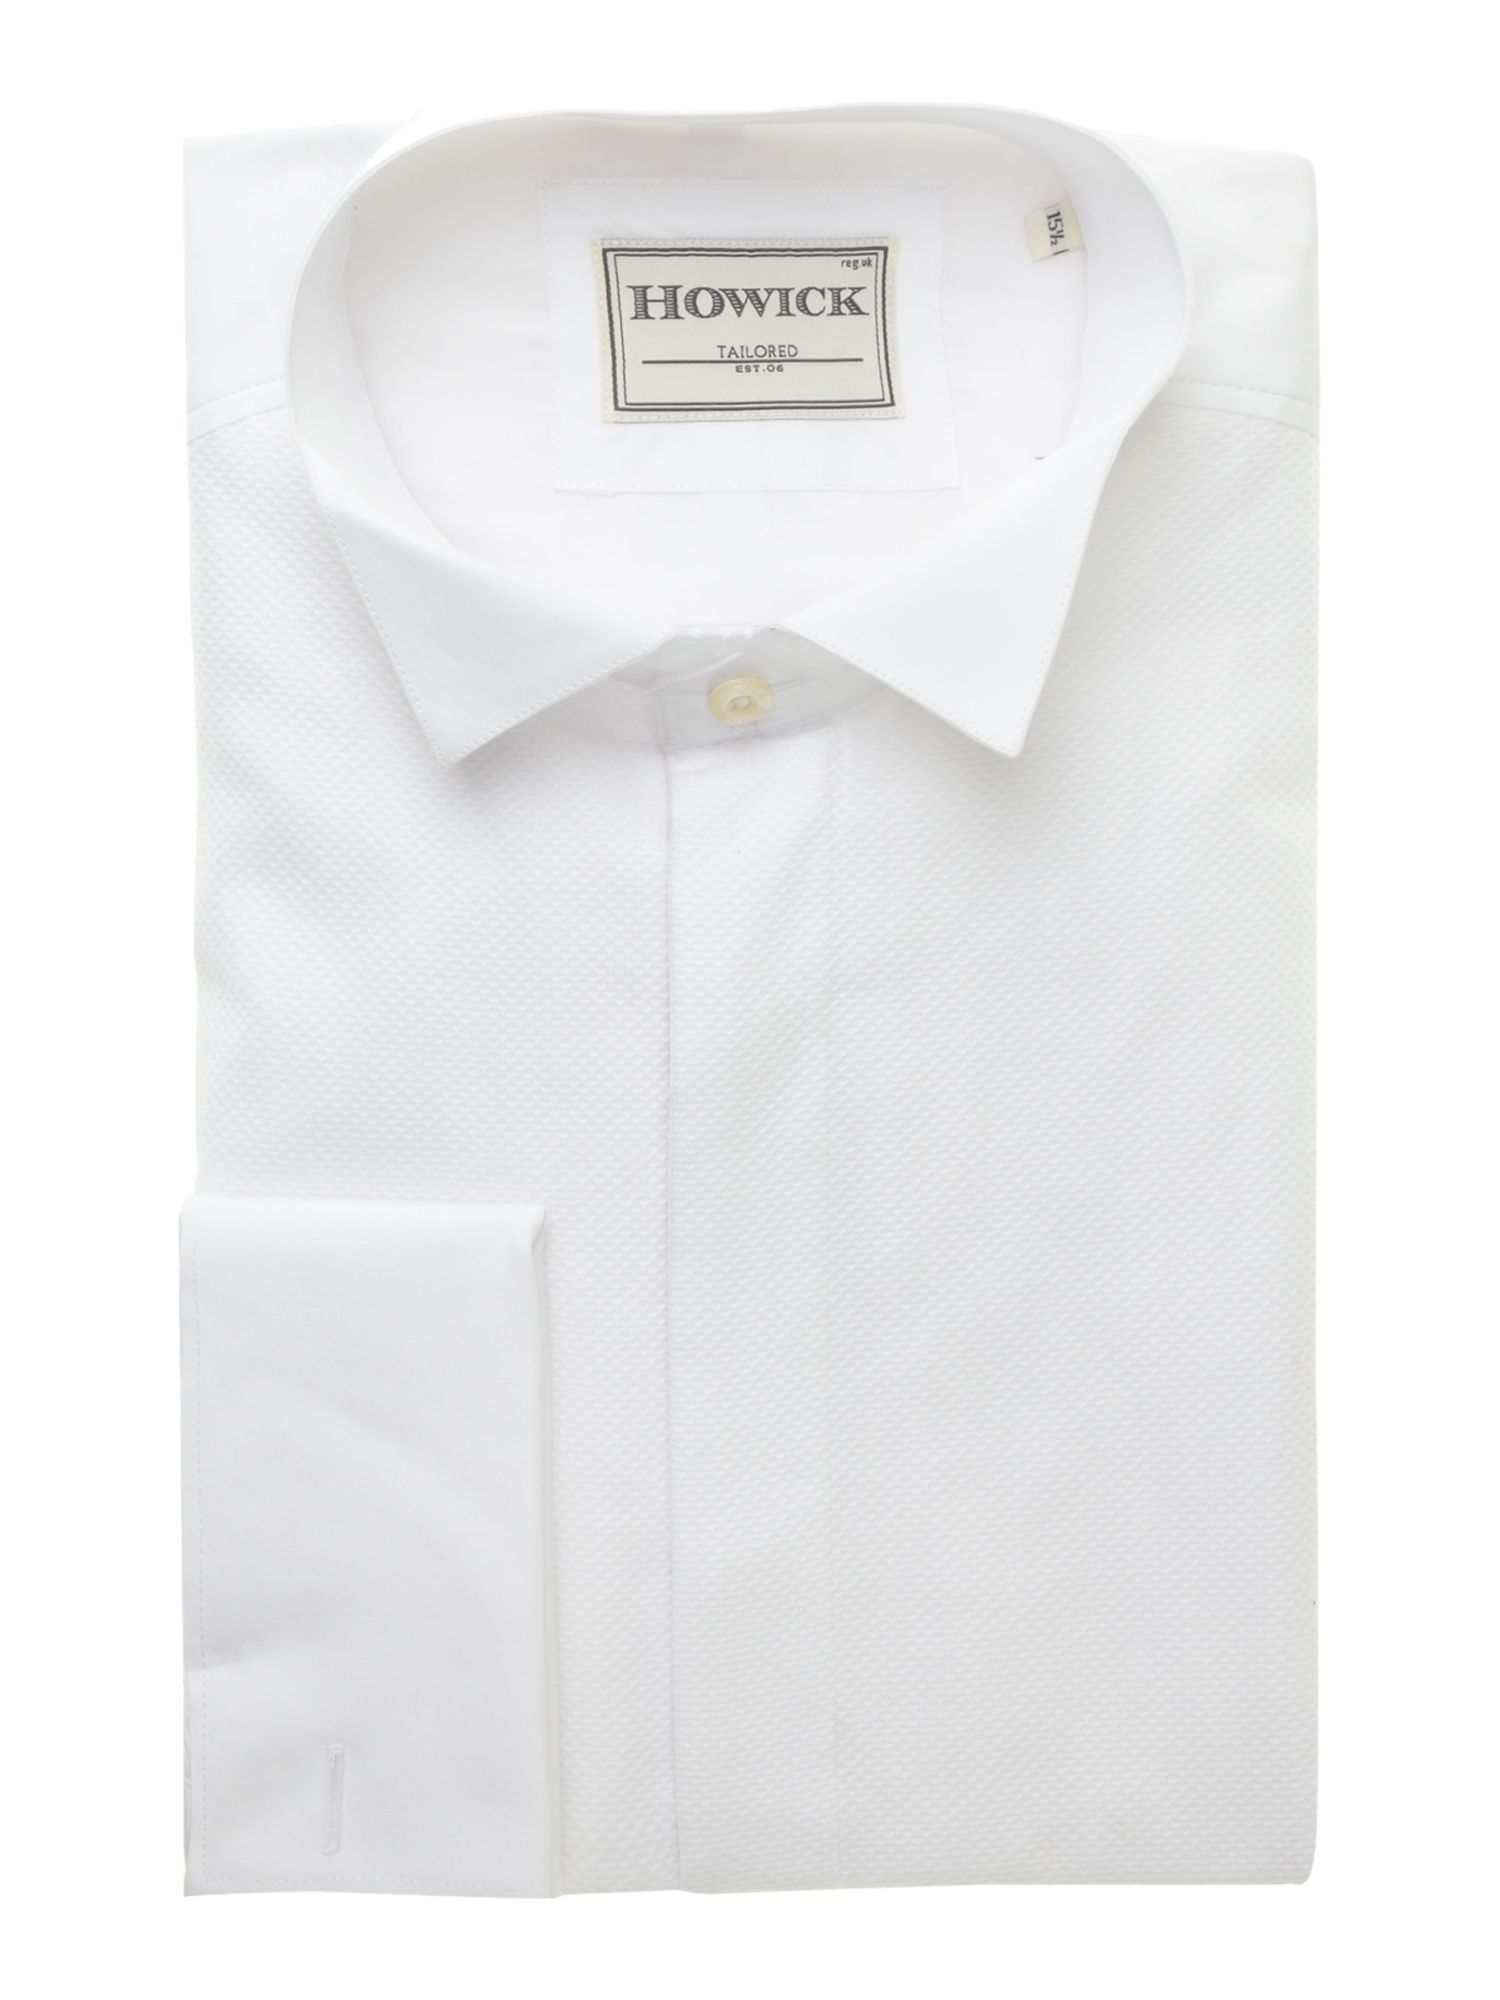 Mens Howick Tailored Wing collar marcella bib evening shirt £19.50 AT vintagedancer.com